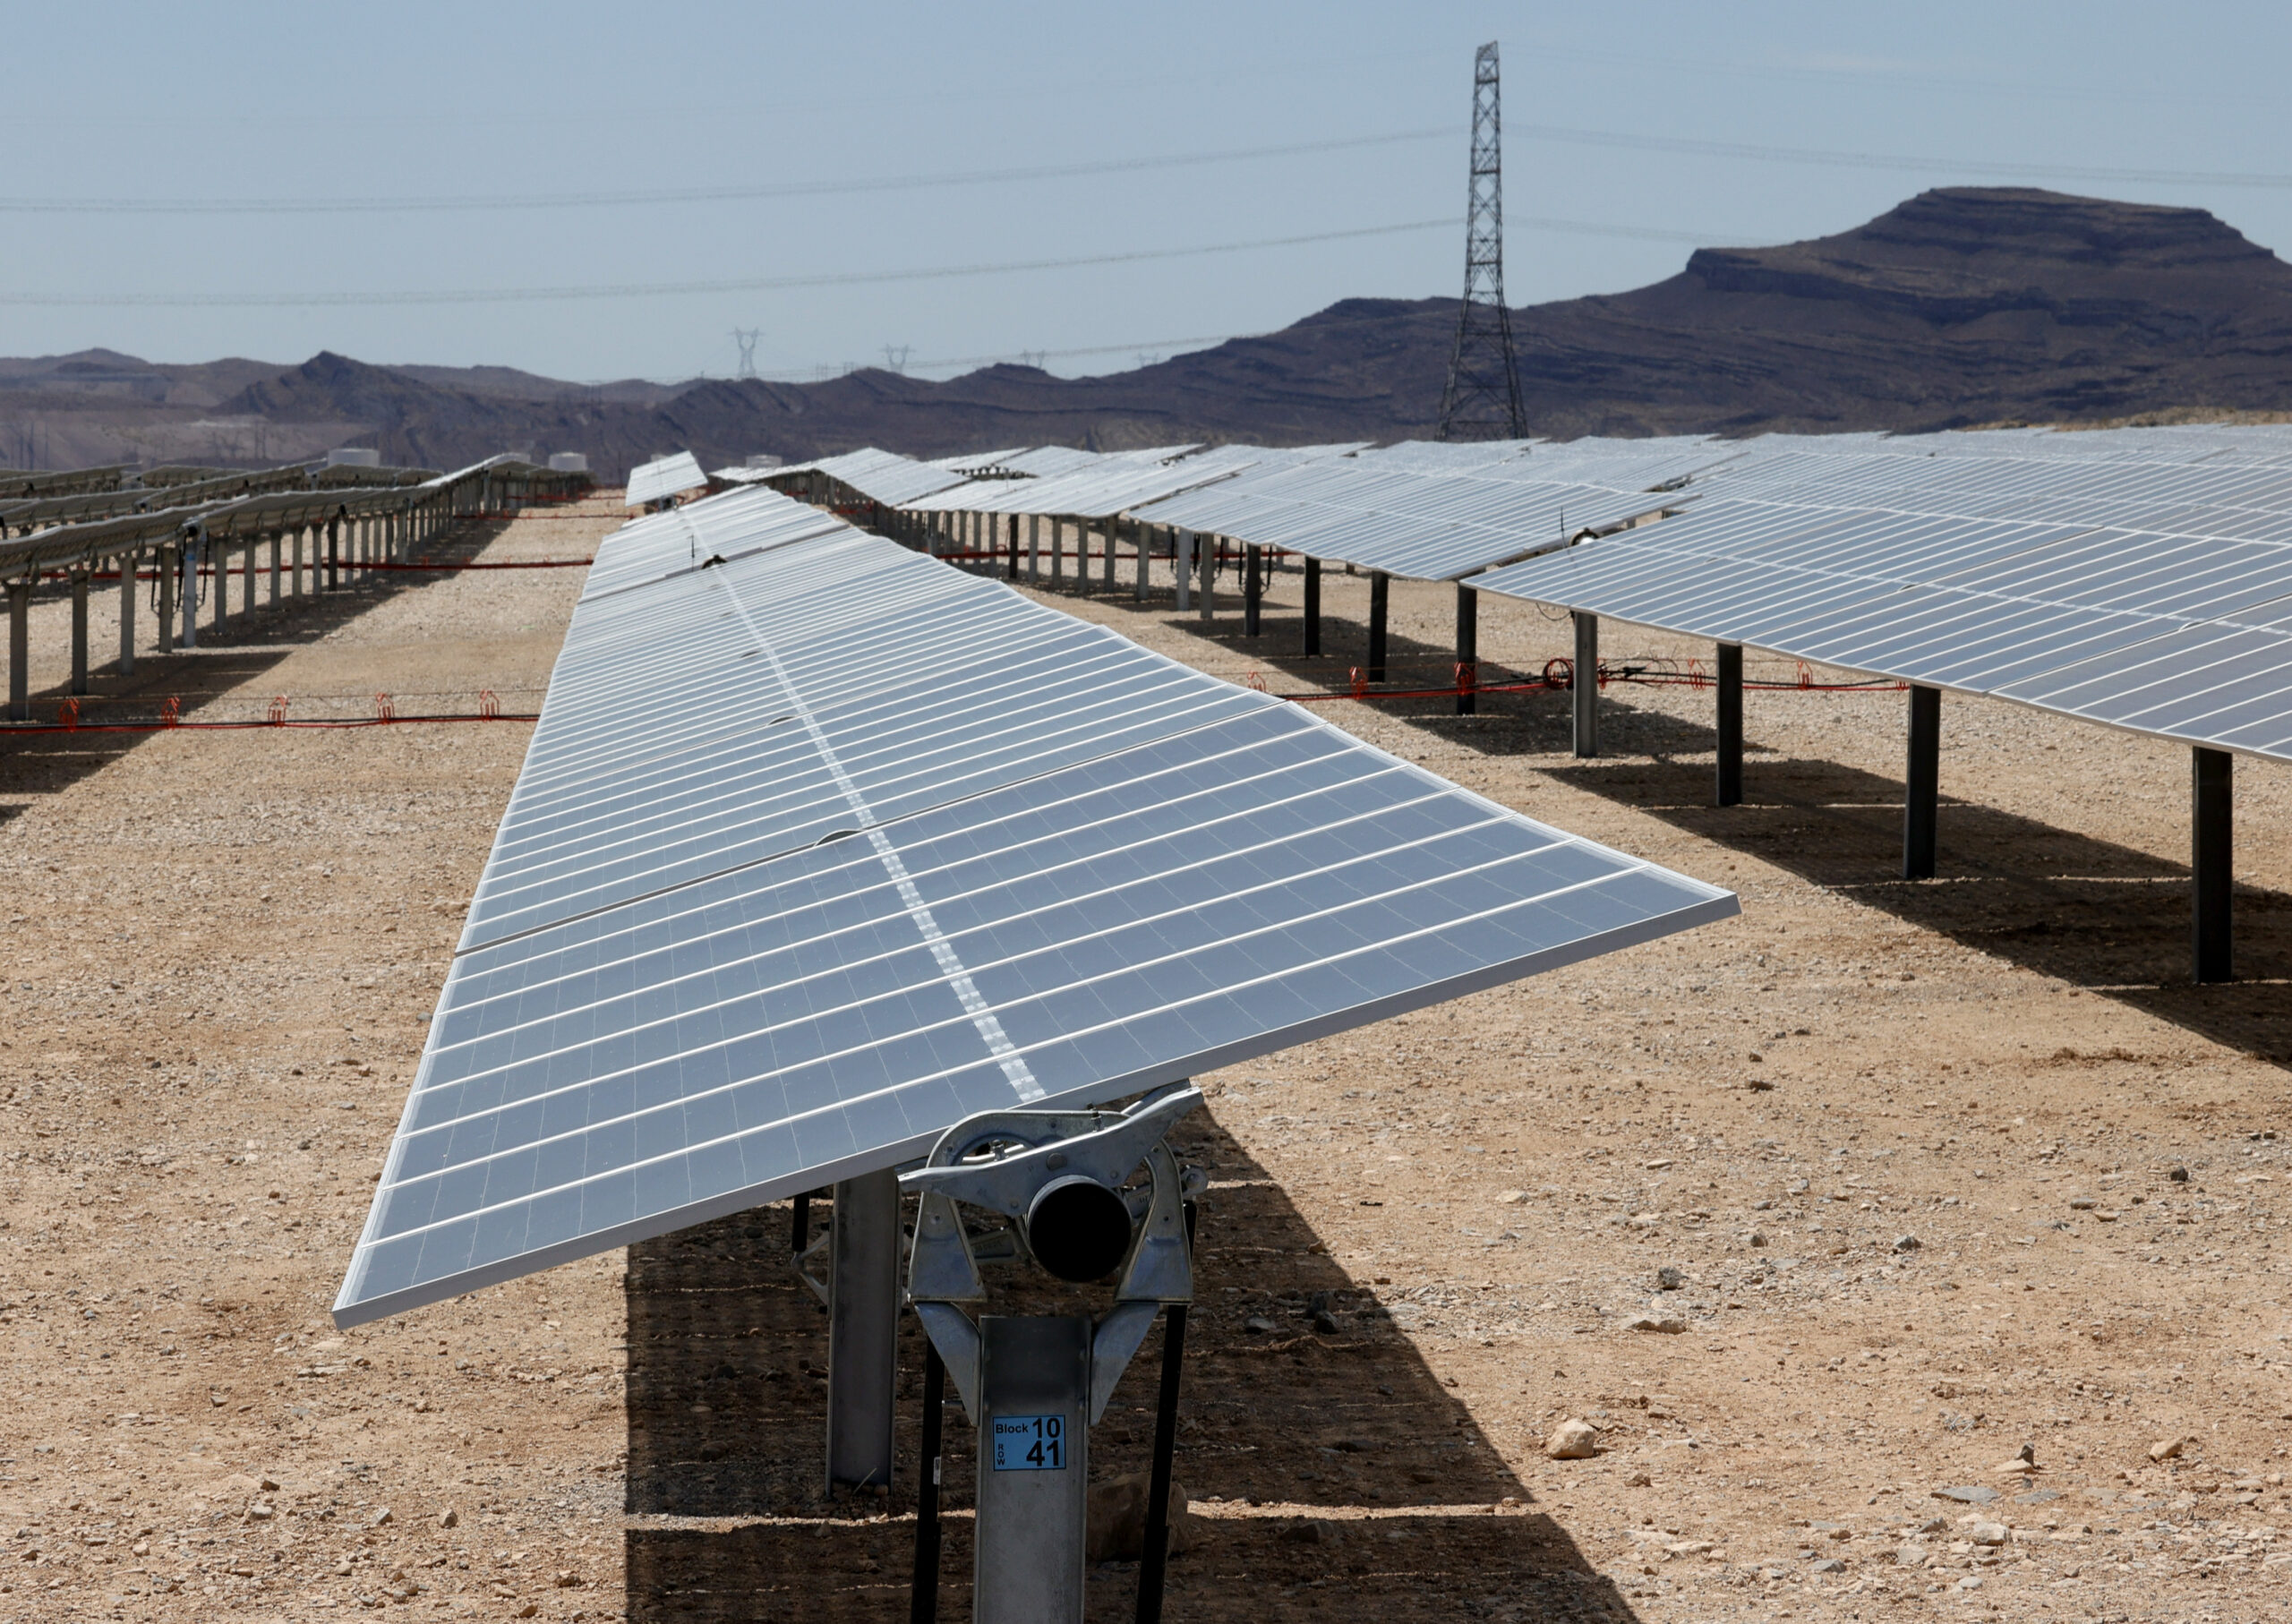 Biden Pushes To Have Solar Energy Provide 45% Of U.S. Electricity By 2050 - News & Guts Media